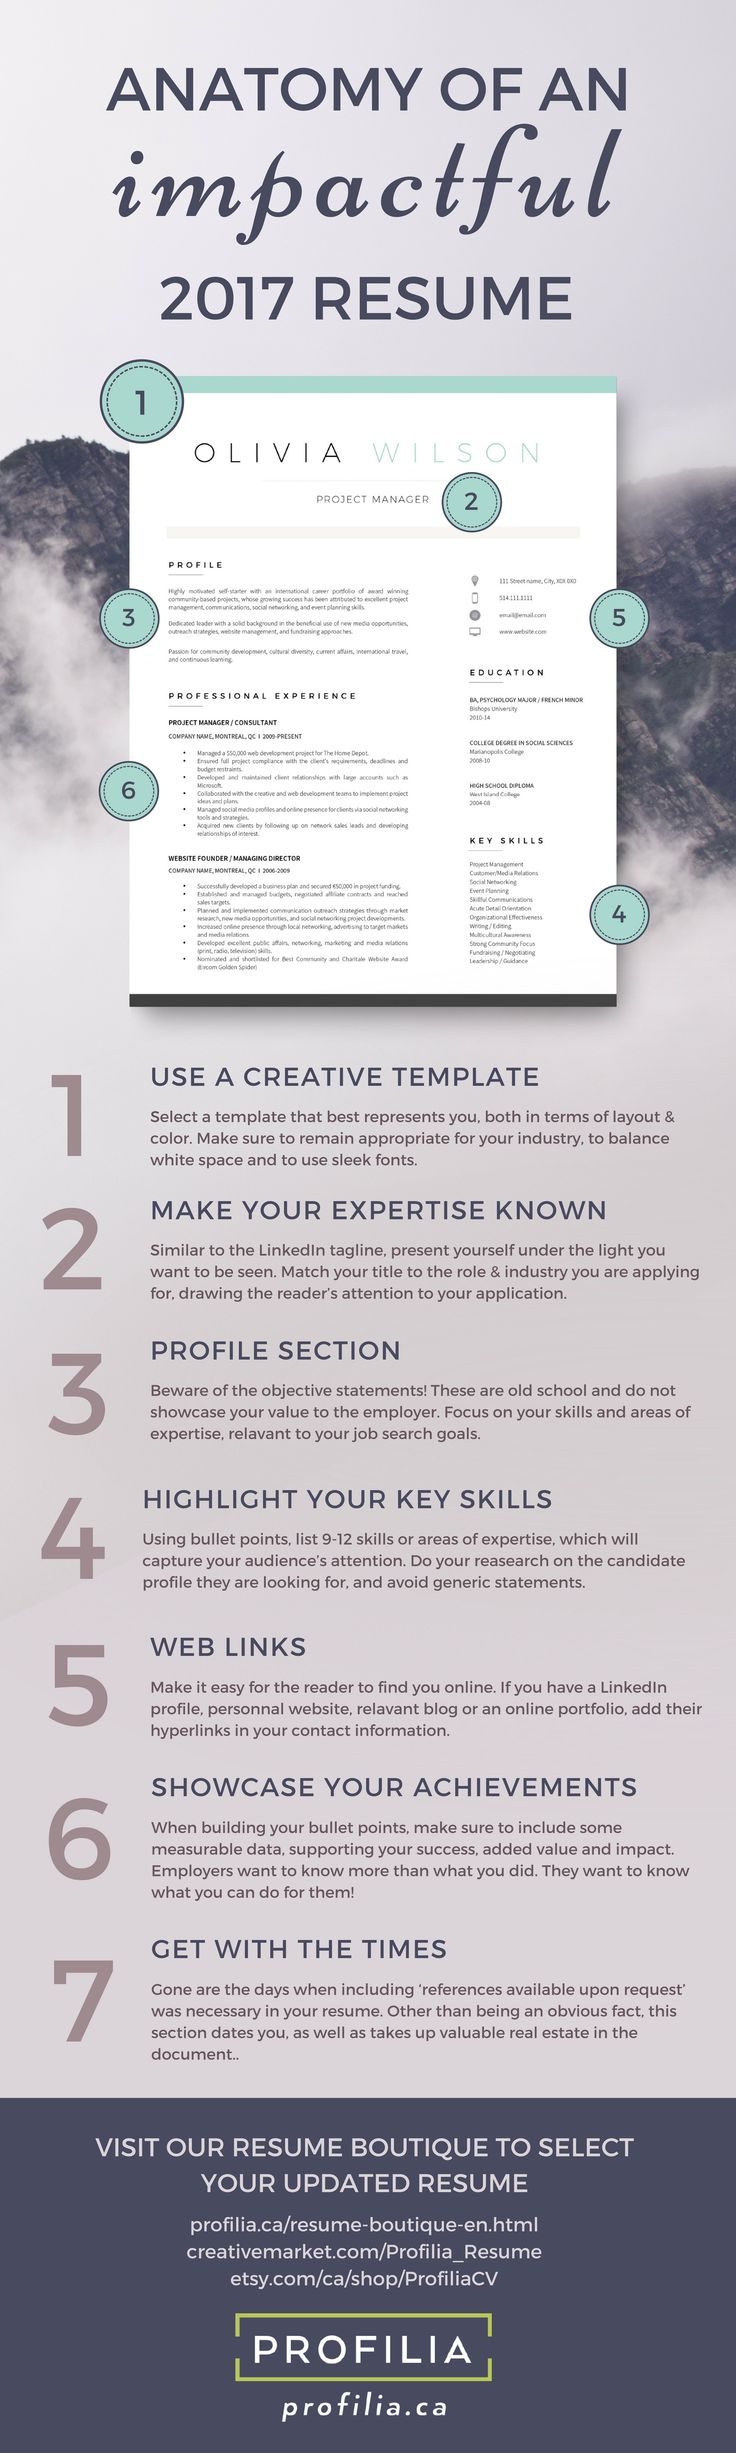 Word Resume u0026 Cover Letter Template 149